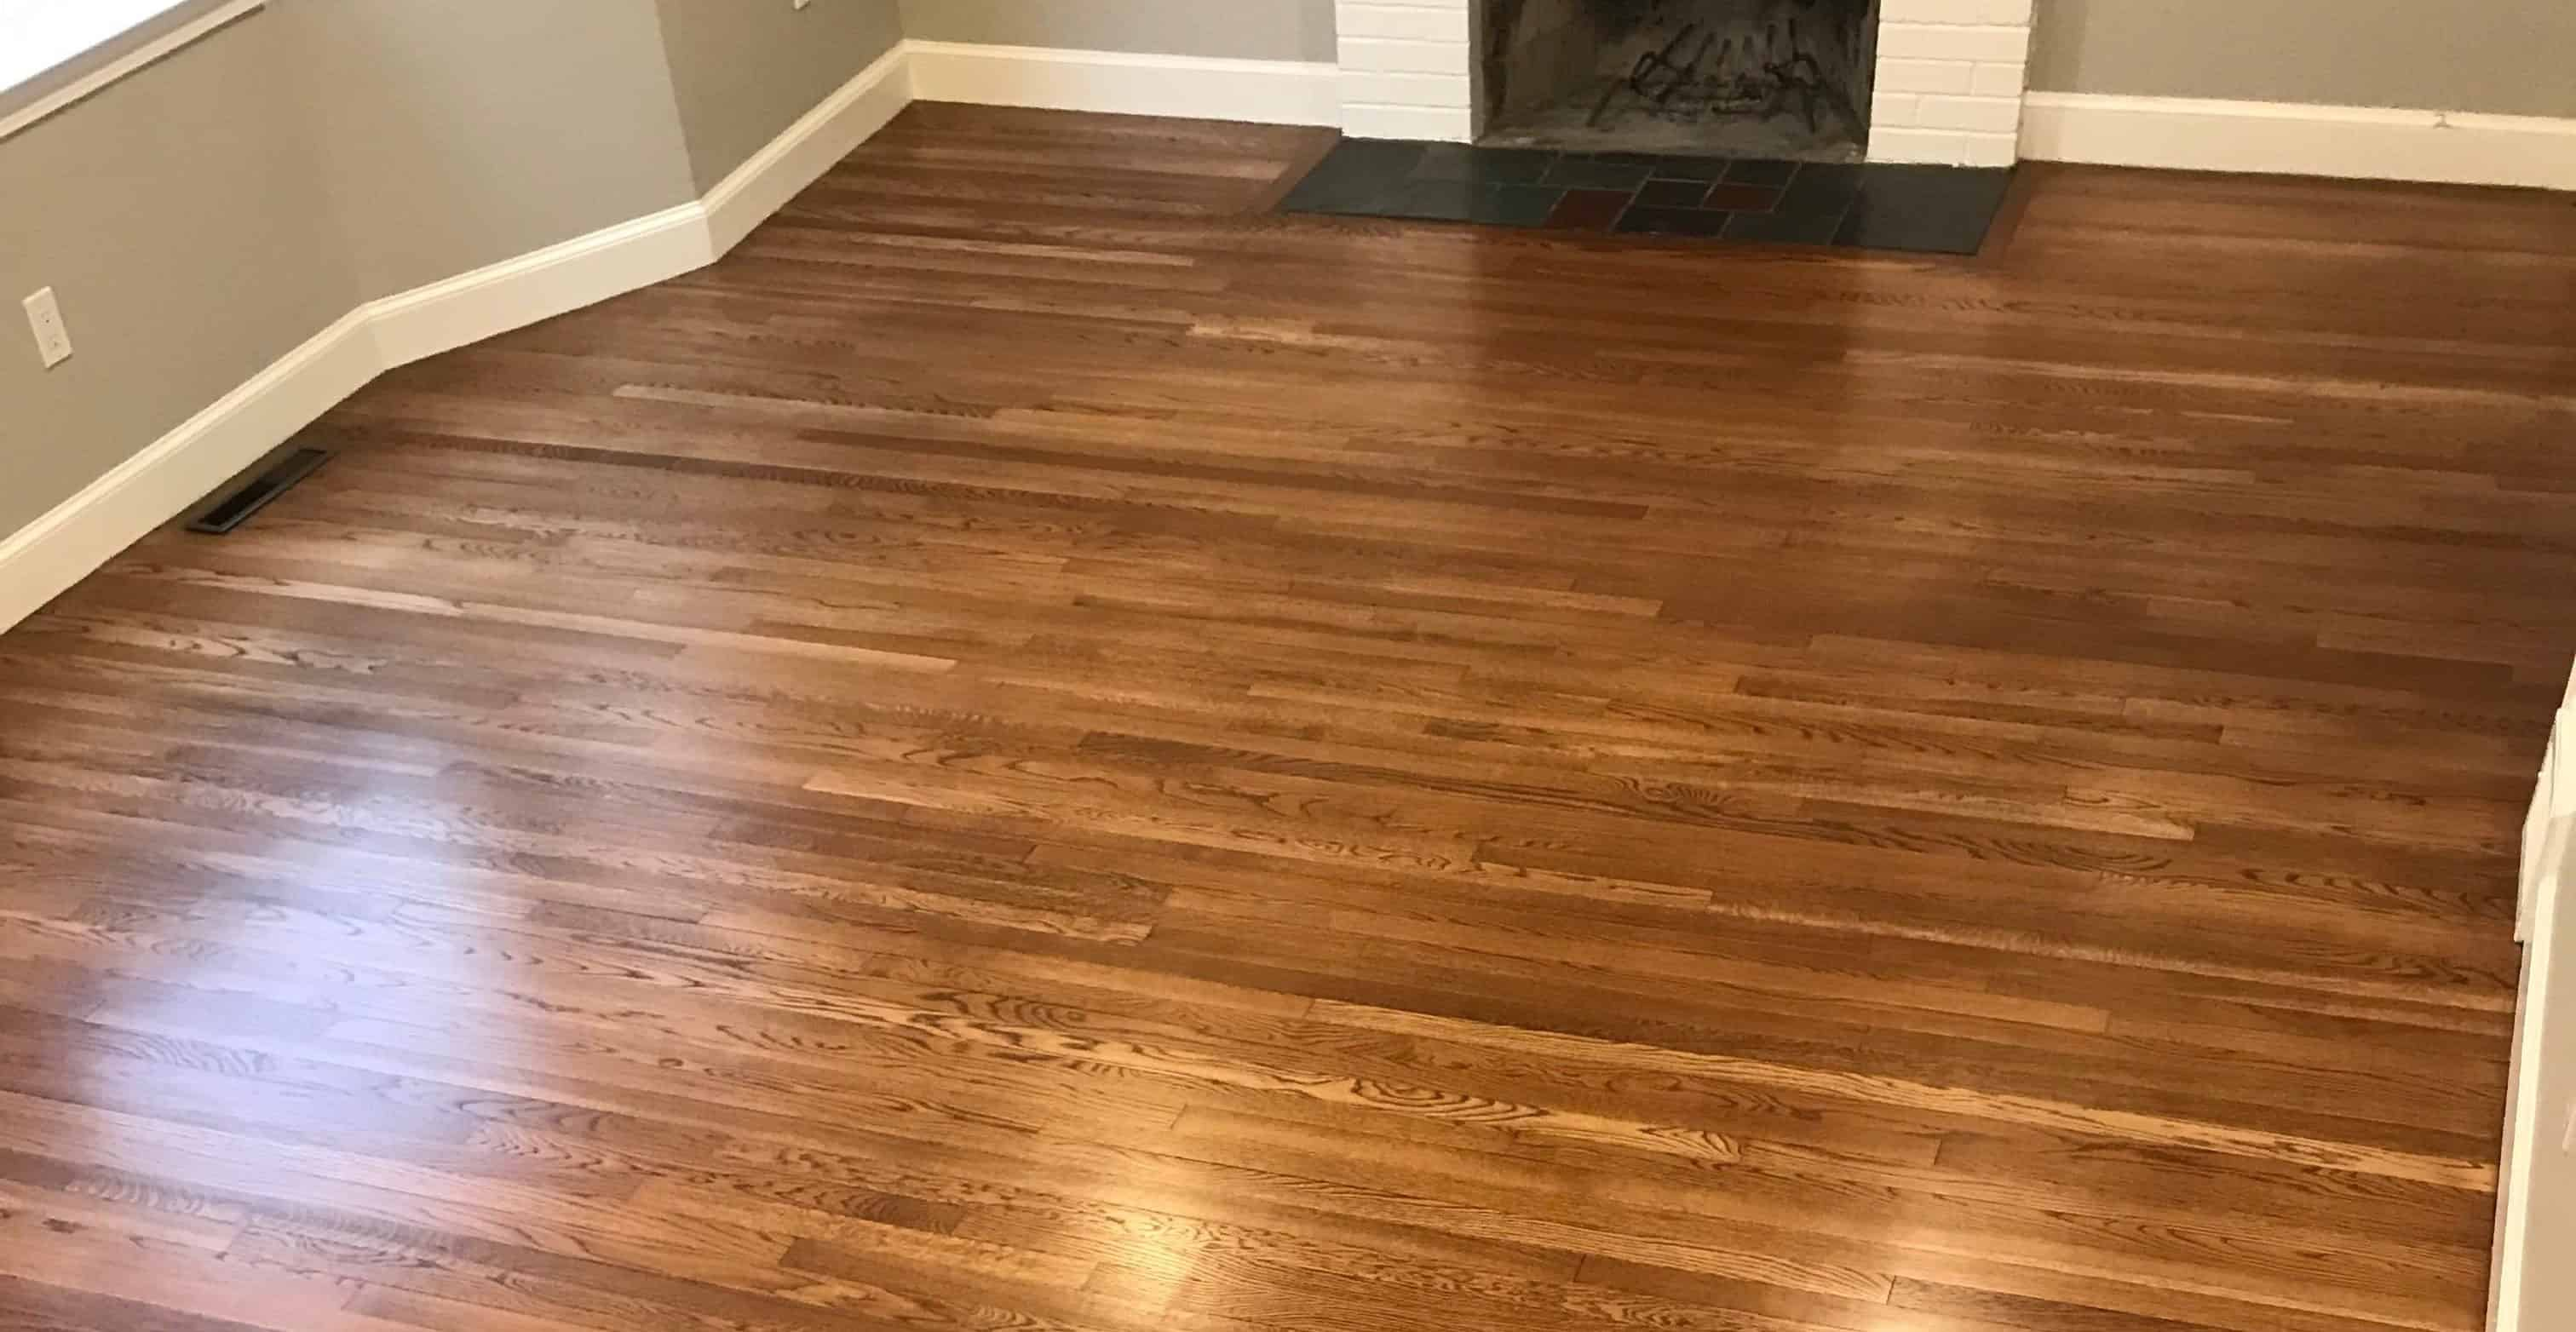 How To Deep Clean Hardwood Floors 5 Simple Steps Prudent Reviews